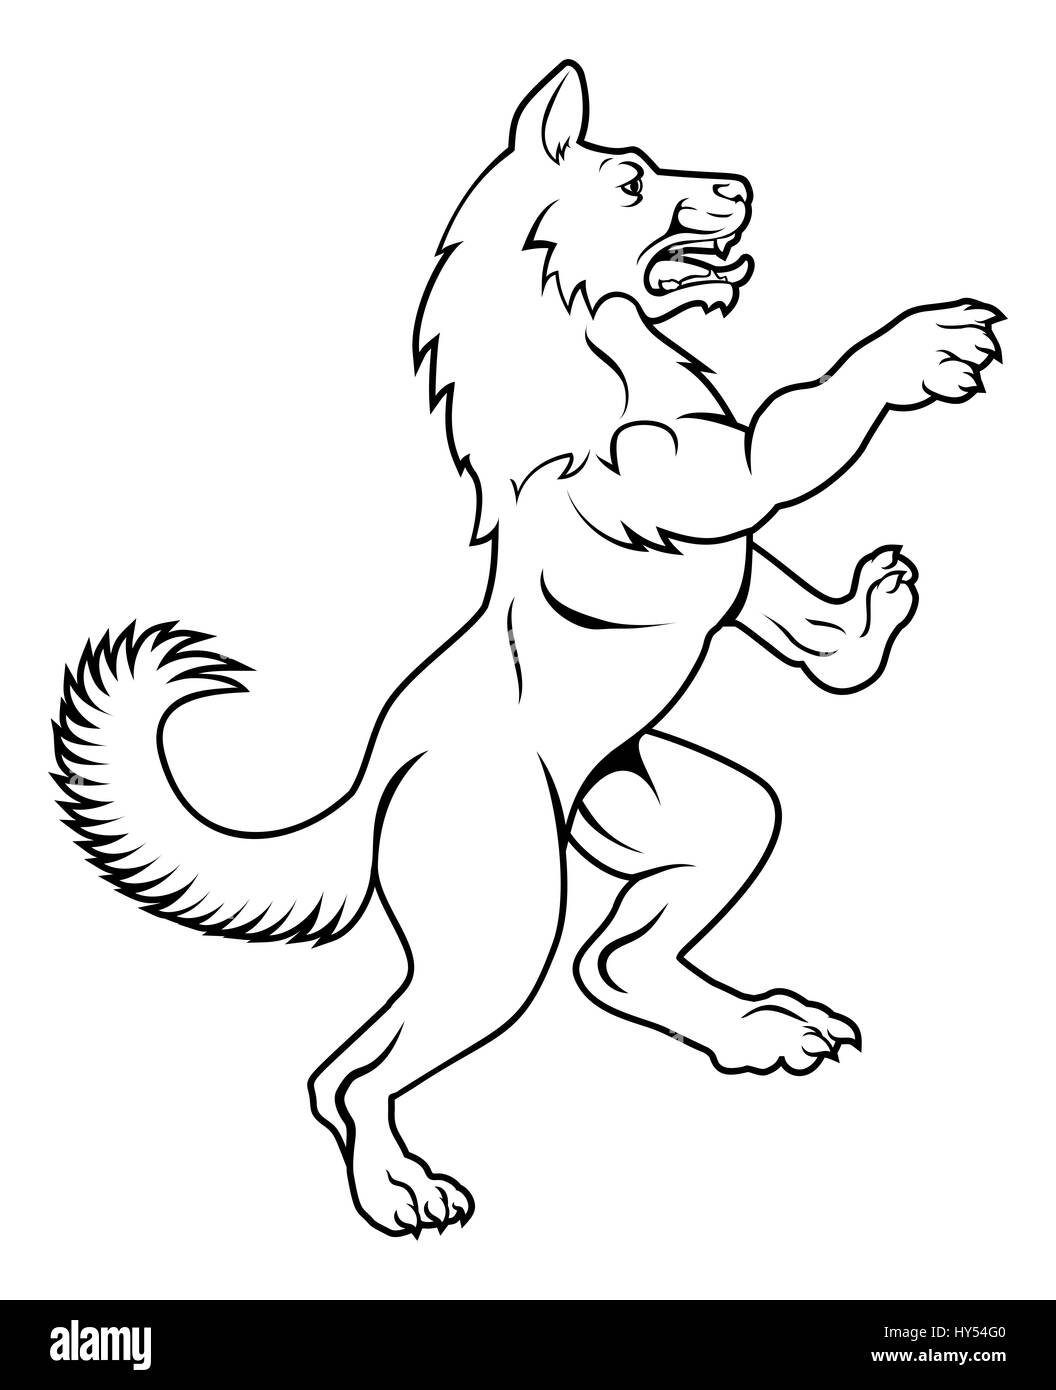 A Pet Dog Or Wolf Animal Standing On Hind Legs In A Heraldic Rampant